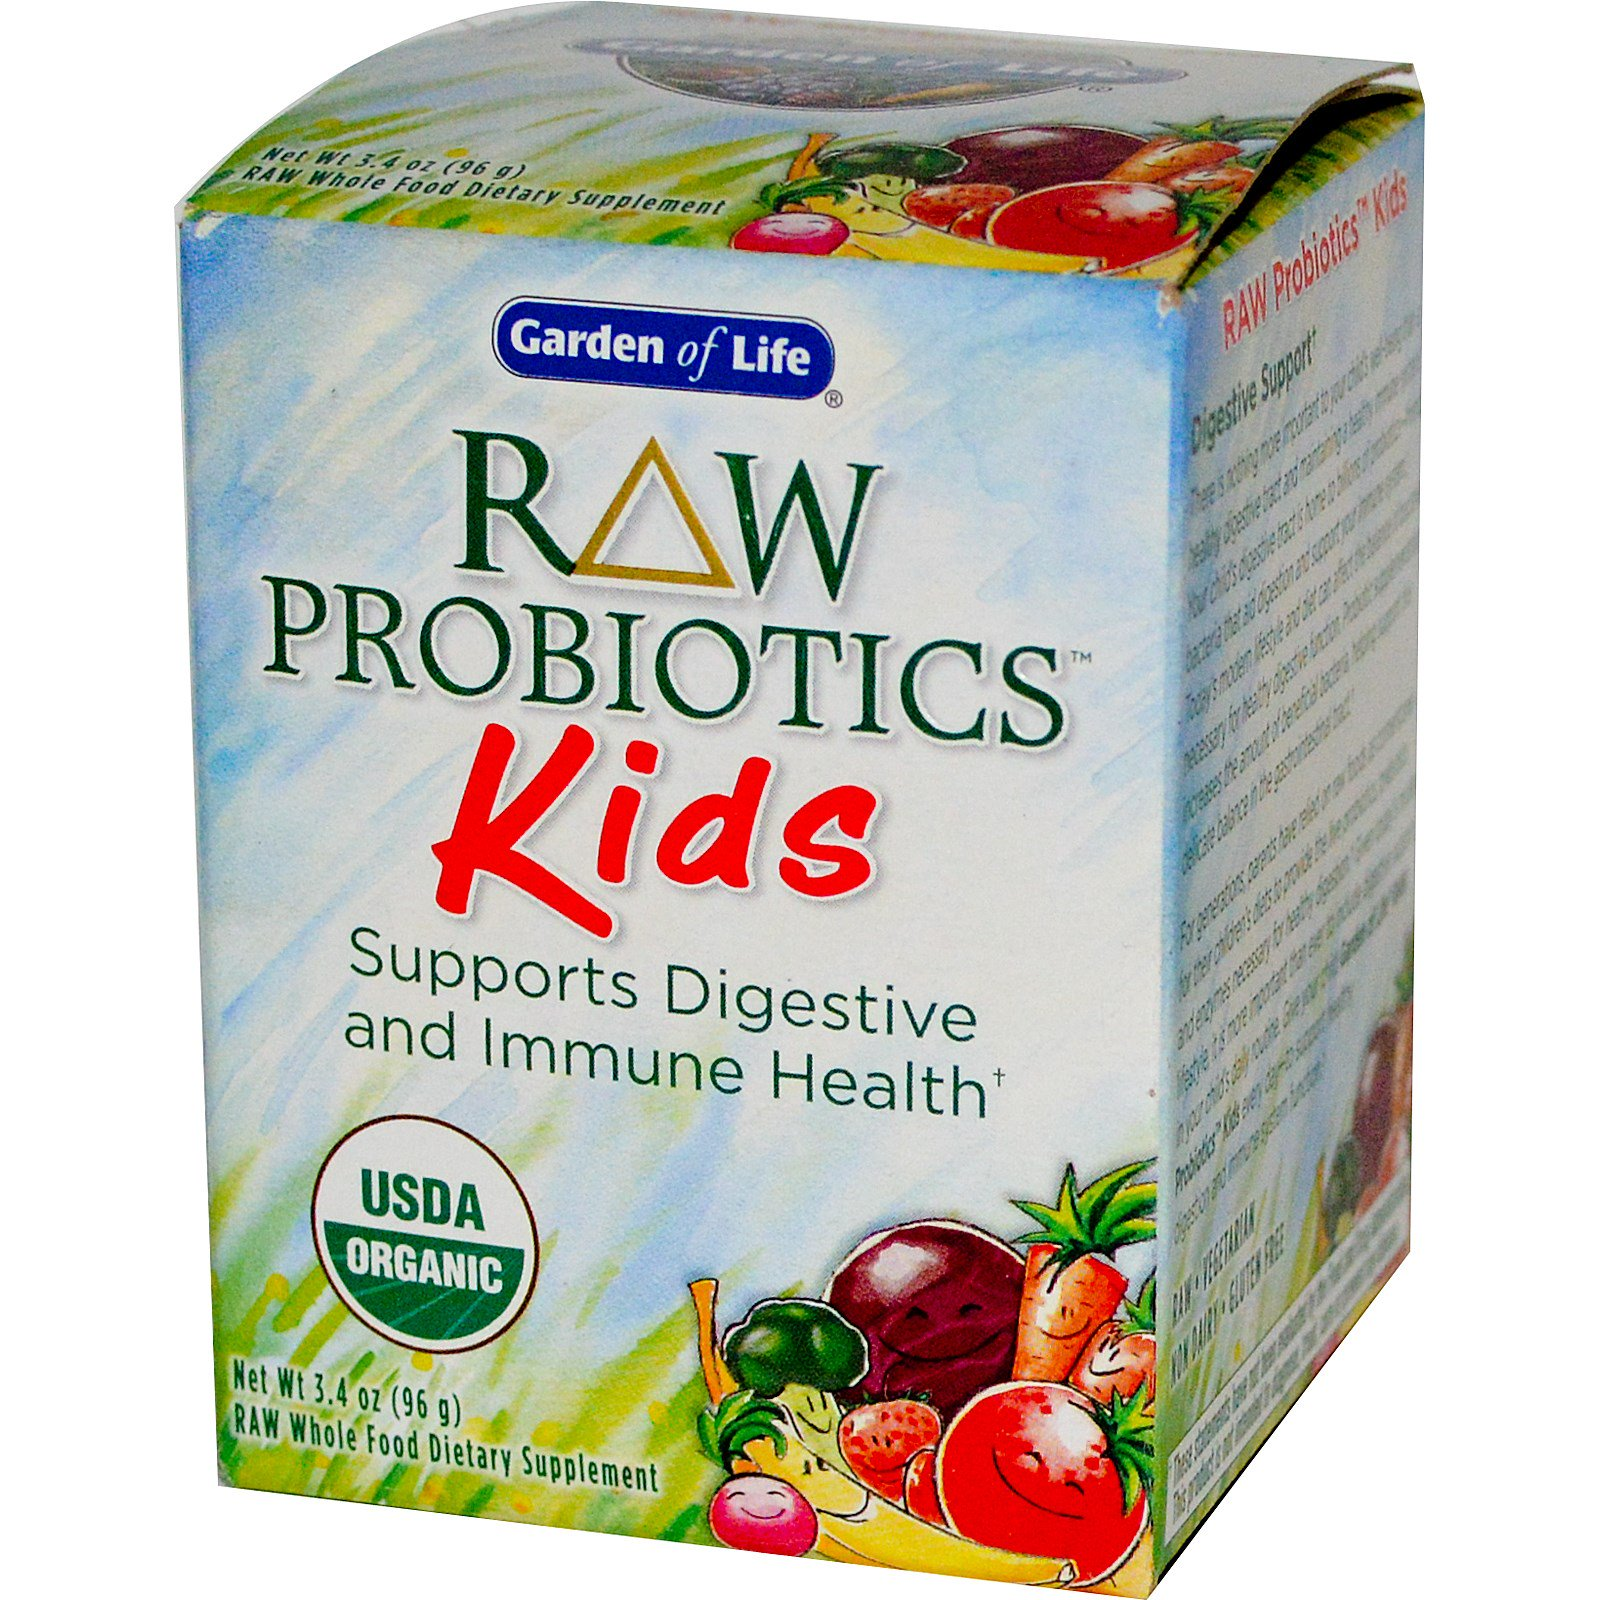 vegetarian garden picture dr products megavits health kids raw chewables formulated ultimate care natural billion life organic vitamins probiotics supplements of head